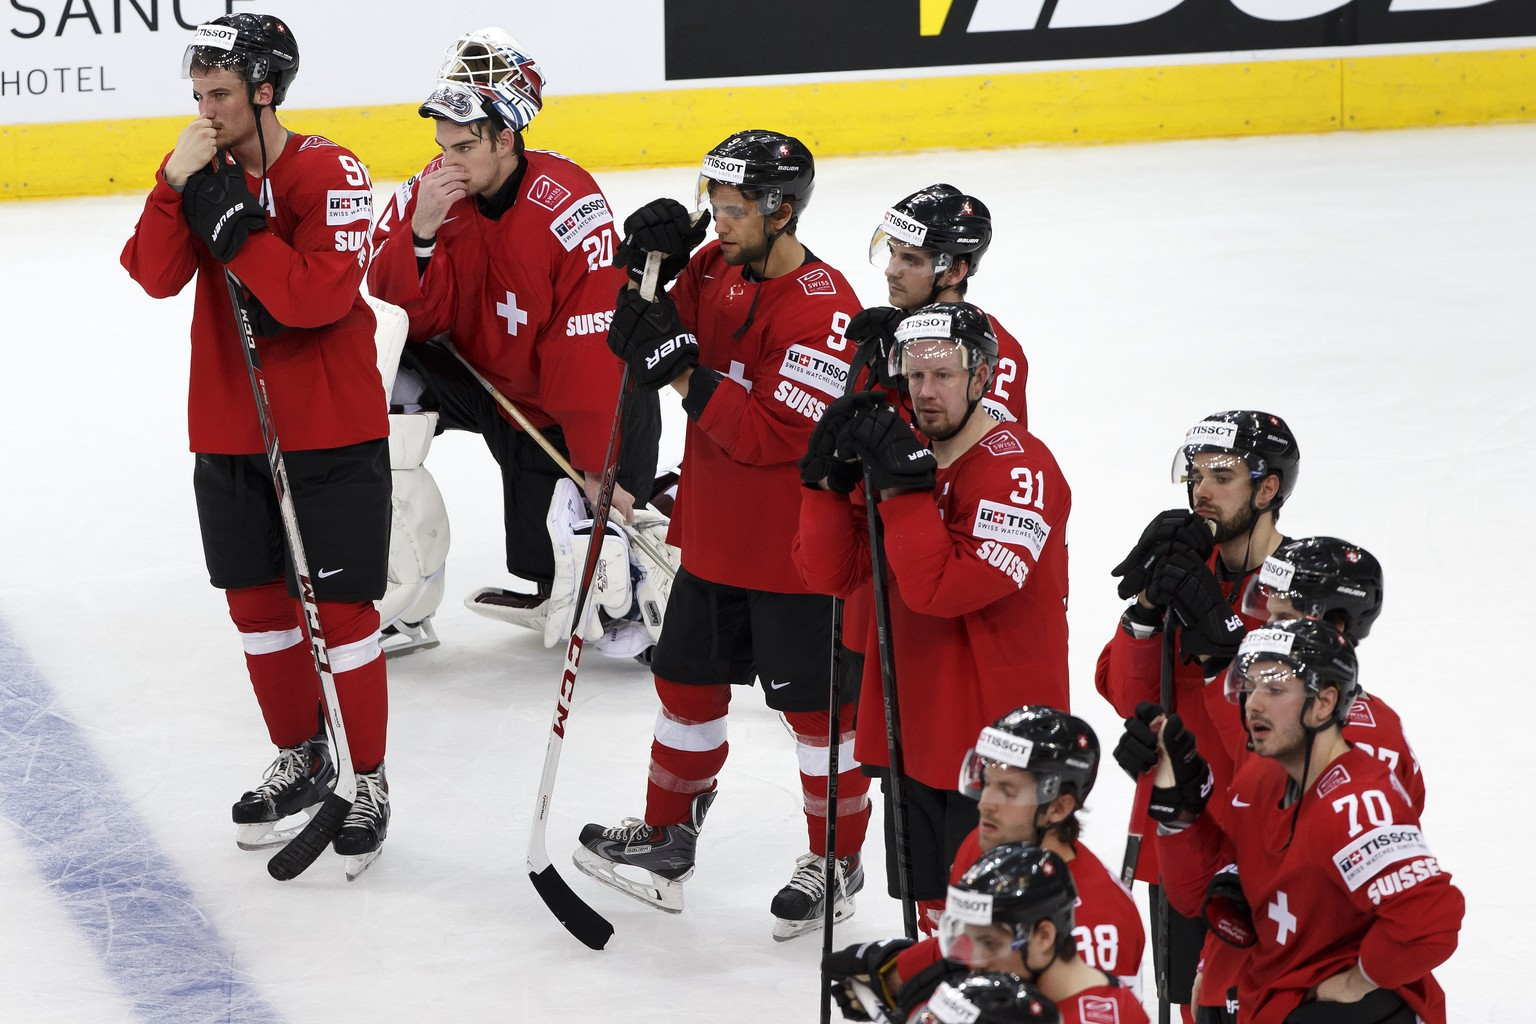 Switzerland's players, from left, Roman Josi, goaltender Reto Berra, Thomas Ruefenacht, Luca Cunti, Mathias Seger, Kevin Romy, Etienne Froidevaux, Denis Hollenstein and other players look disappointed after losing against Belarus after the 2014 IIHF Ice Hockey World Championships preliminary round game Switzerland vs Belarus, at the Minsk Arena, in Minsk, Belarus, Monday, May 12, 2014. (KEYSTONE/Salvatore Di Nolfi)